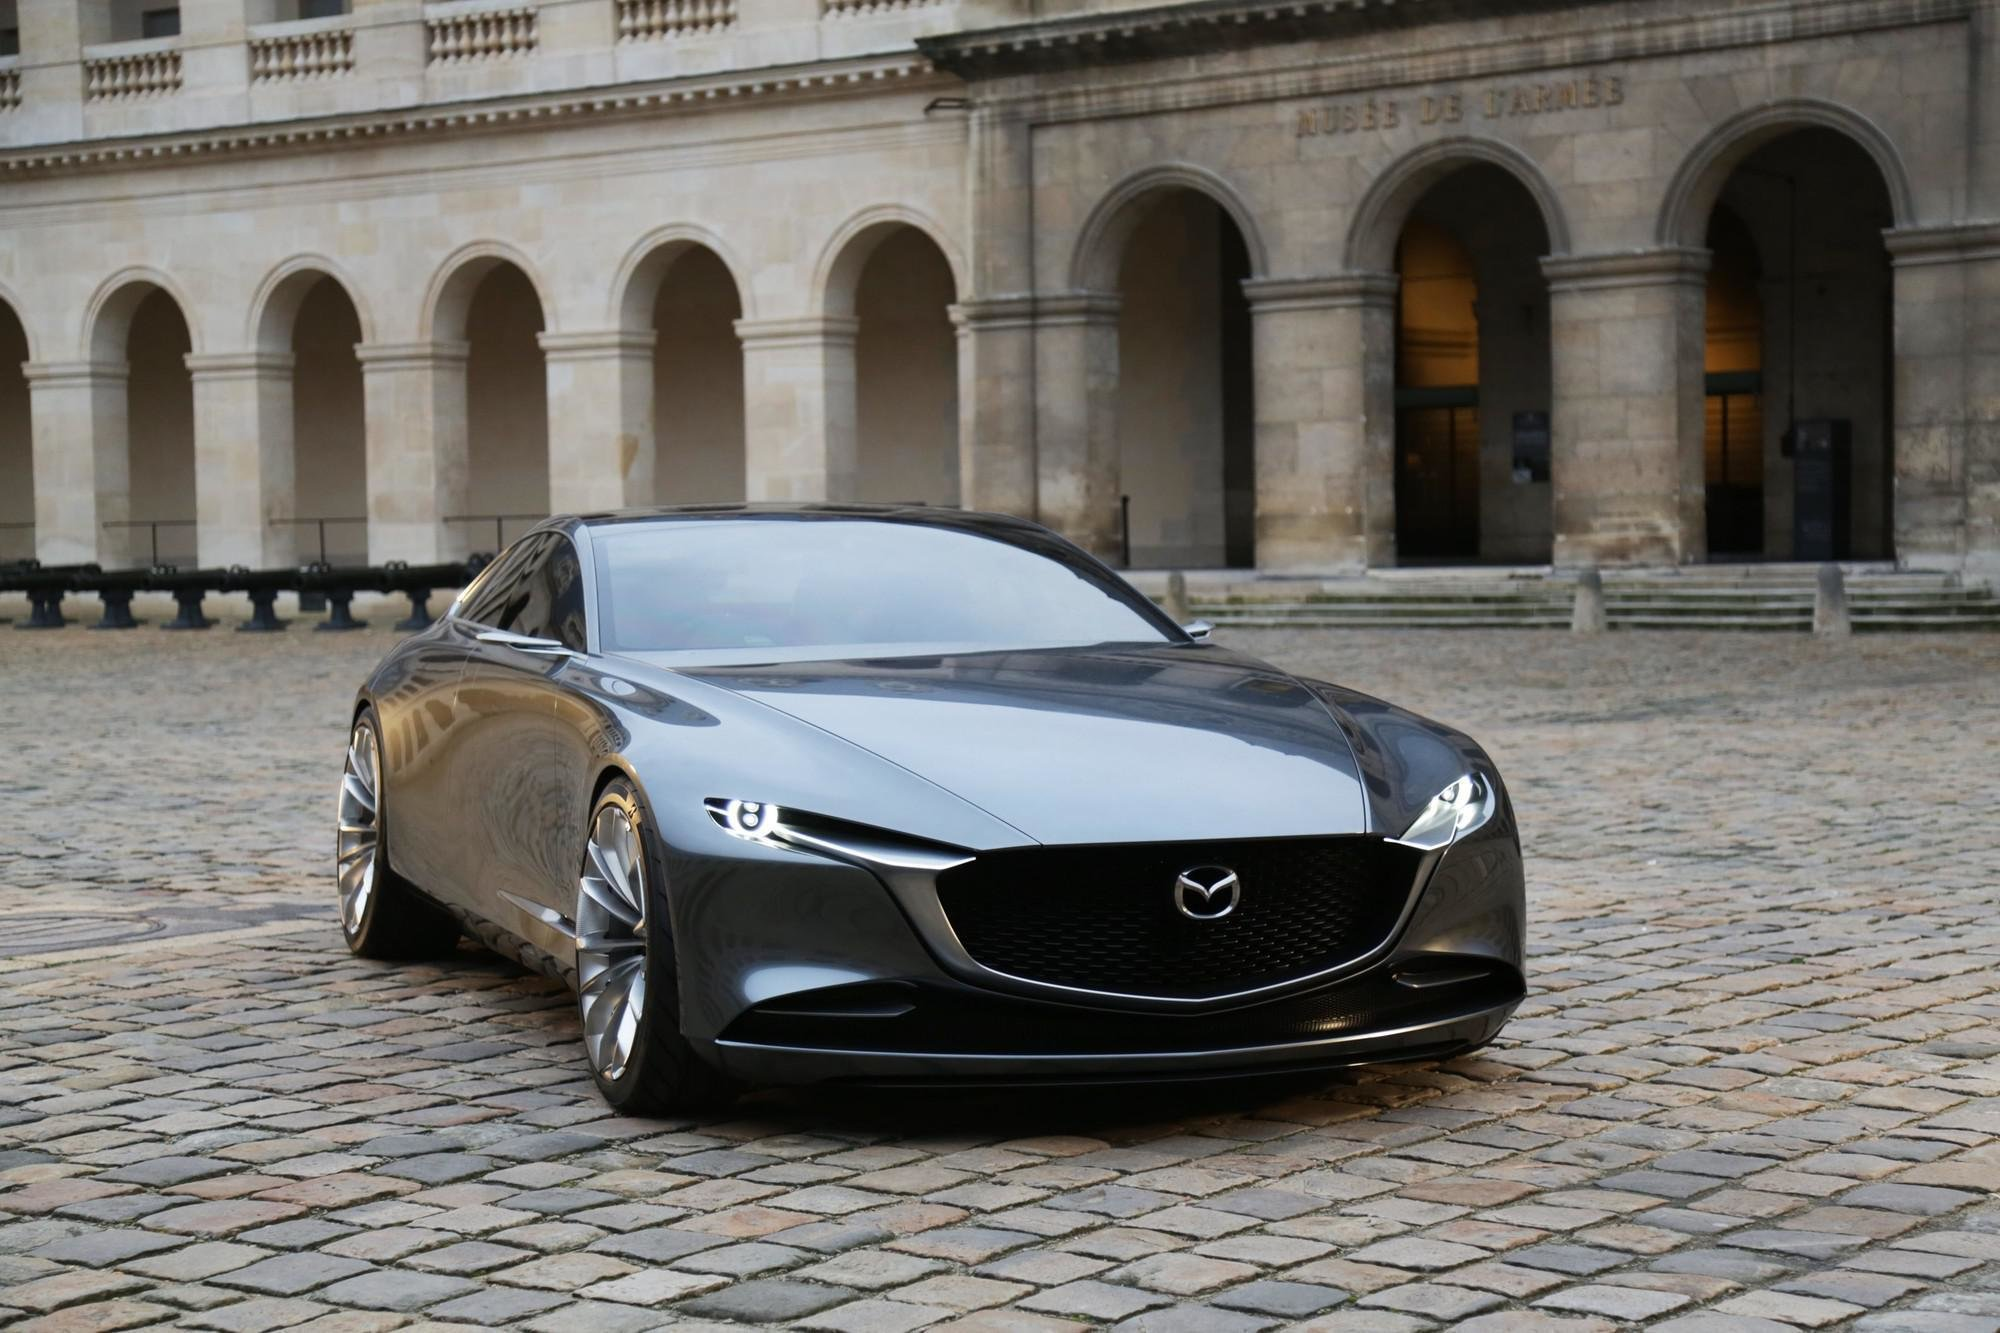 """New El Mazda Vision Coupe Gana El Premio """"Most Beautiful On This Month"""